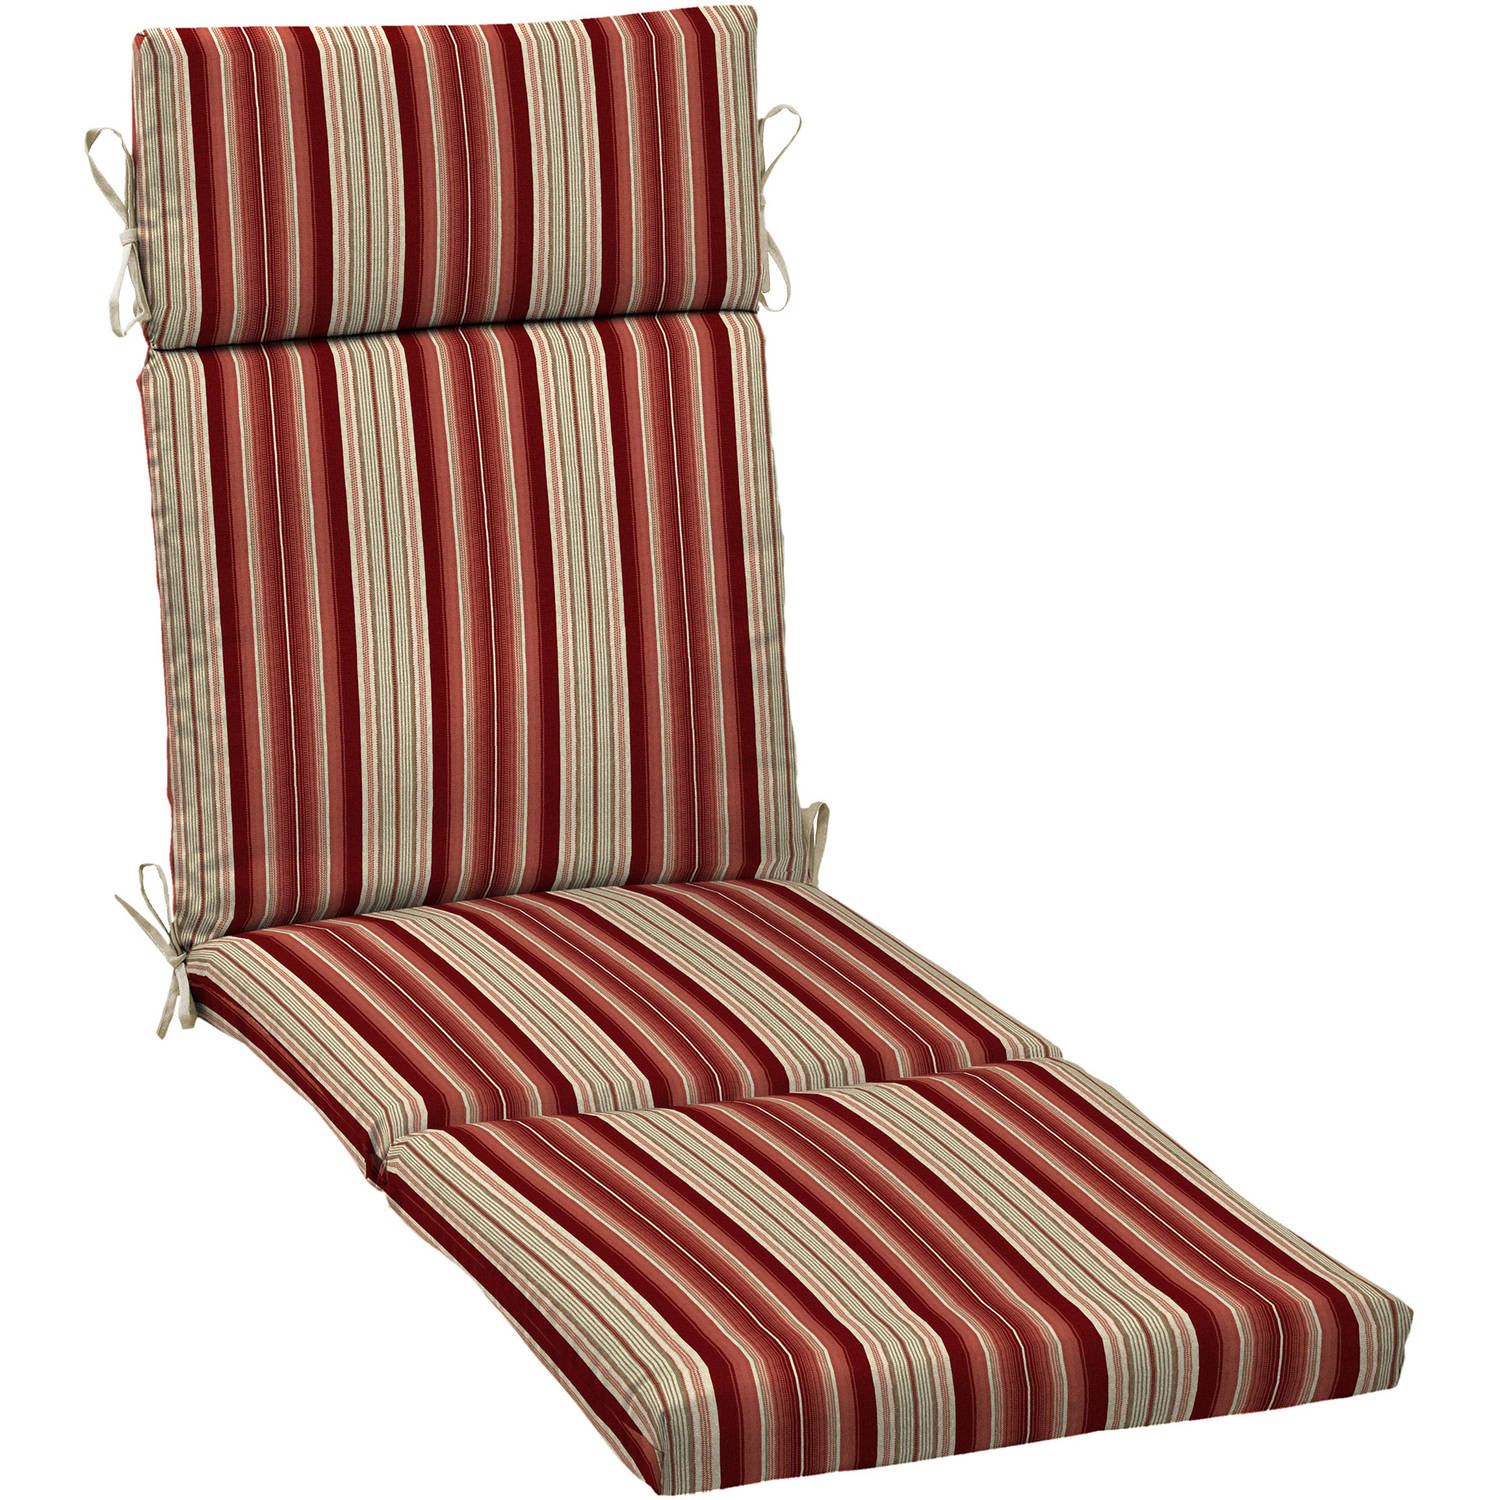 Better Homes and Gardens Outdoor Patio Chaise Lounge Cushion Multiple Patterns  sc 1 st  Walmart : chaise patio cushions - Sectionals, Sofas & Couches